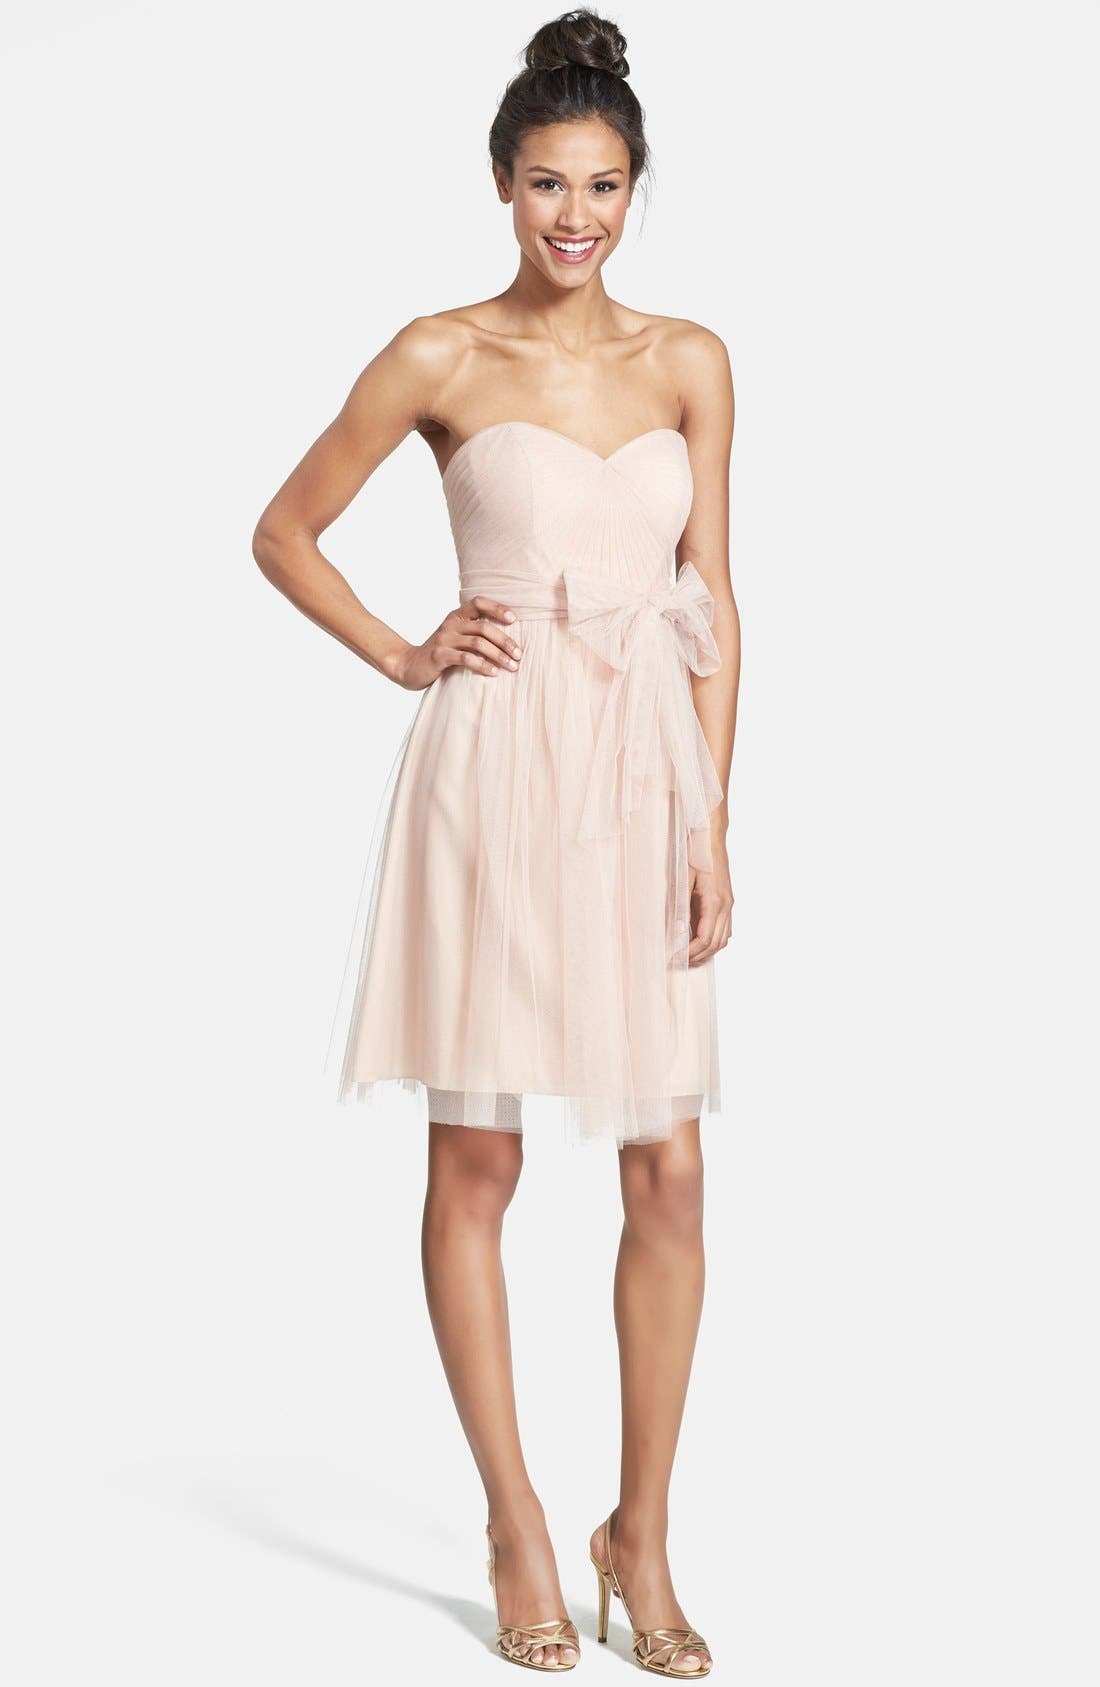 Main Image - Jenny Yoo 'Wren' Convertible Tulle Fit & Flare Dress